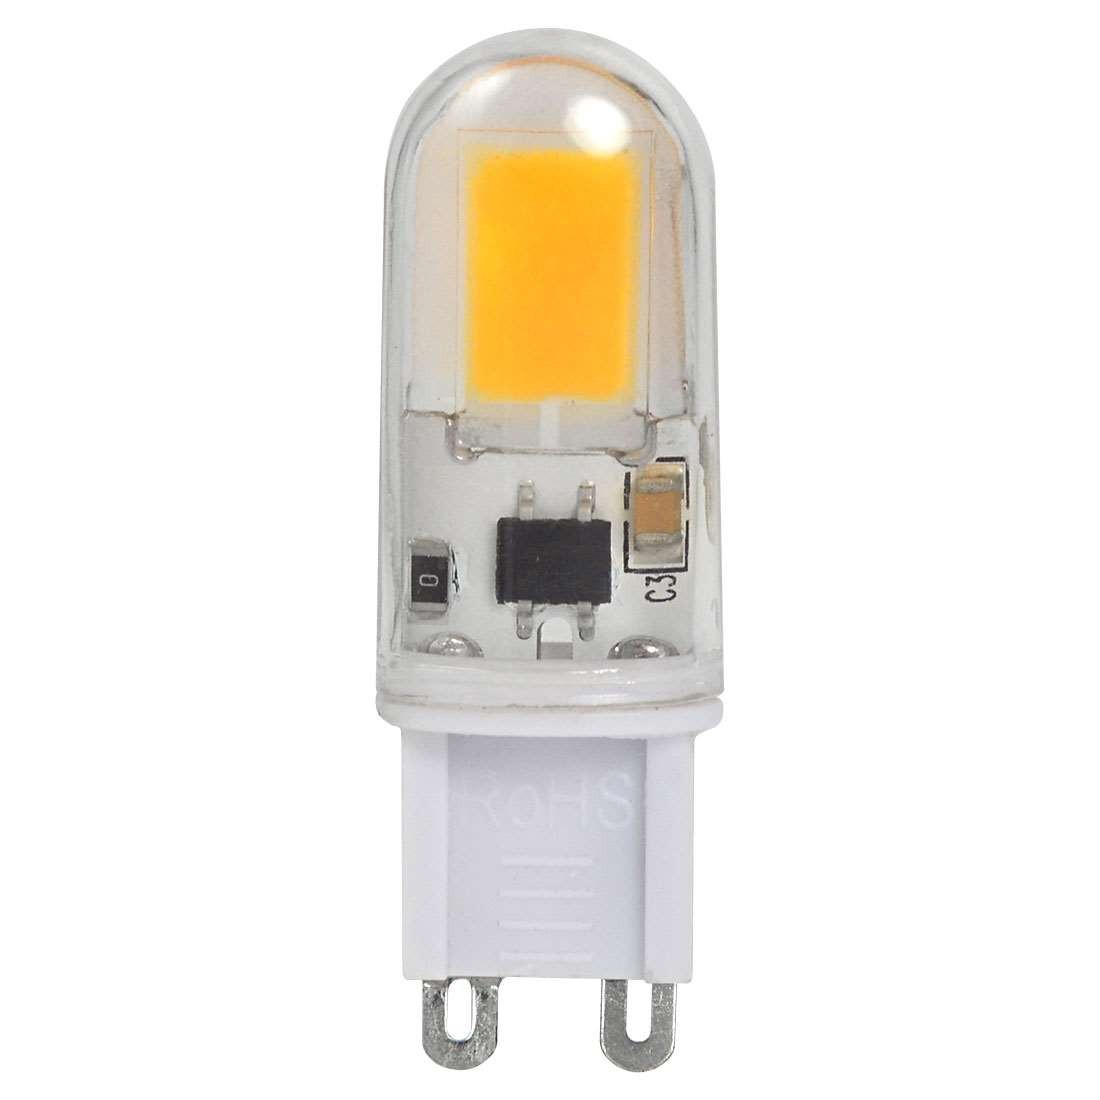 mengsled mengs g9 4w led light cob with acrylic material led bulb lamp ac 220 240v in warm. Black Bedroom Furniture Sets. Home Design Ideas